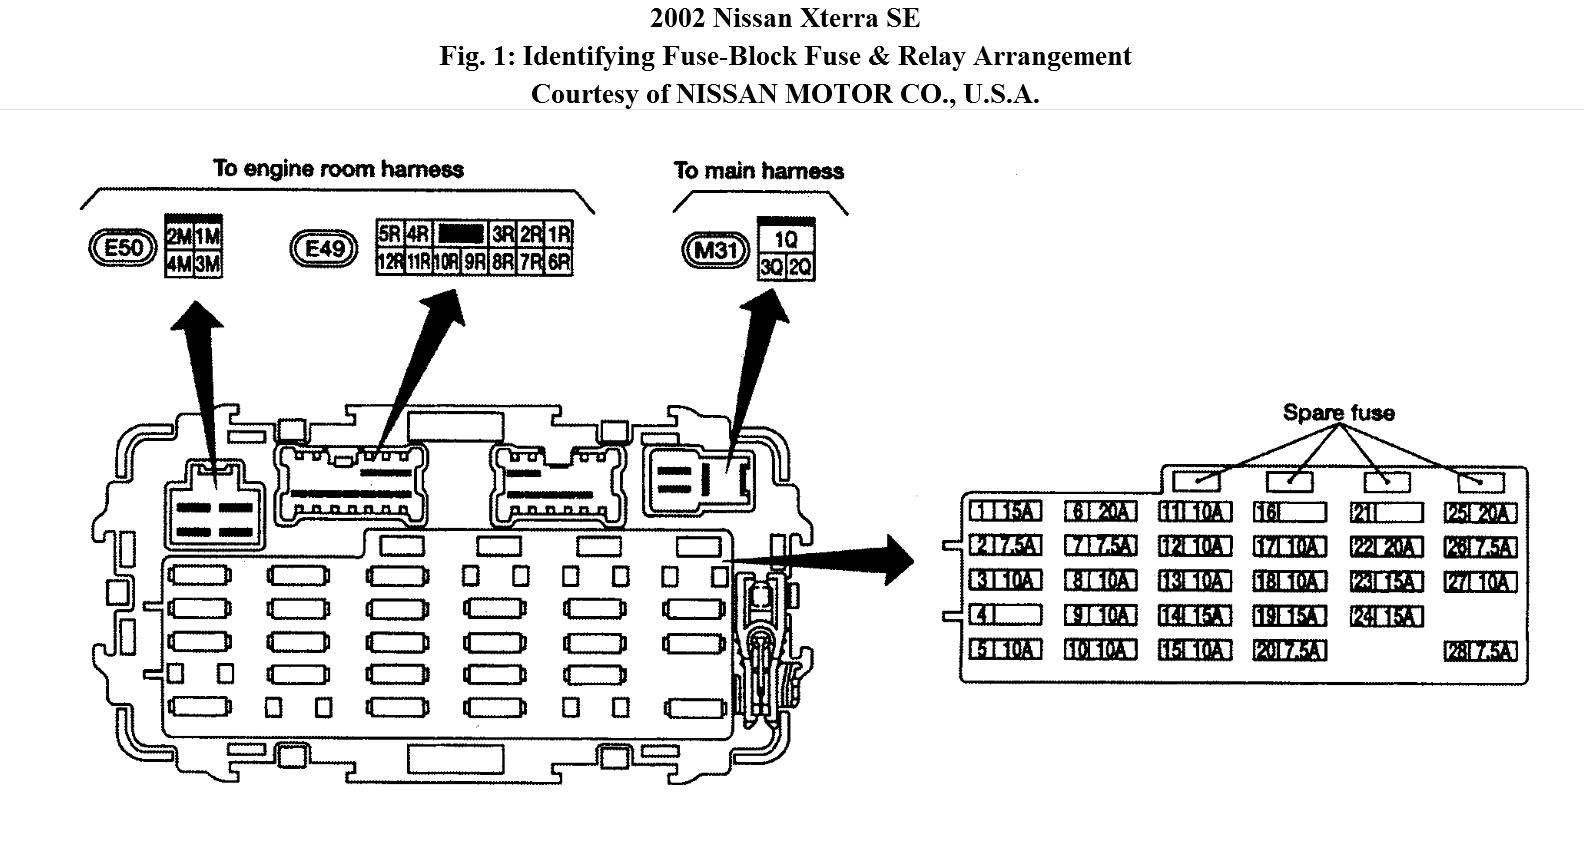 Nissan Fuse Box Diagram : Nissan xterra fuse box diagram wiring